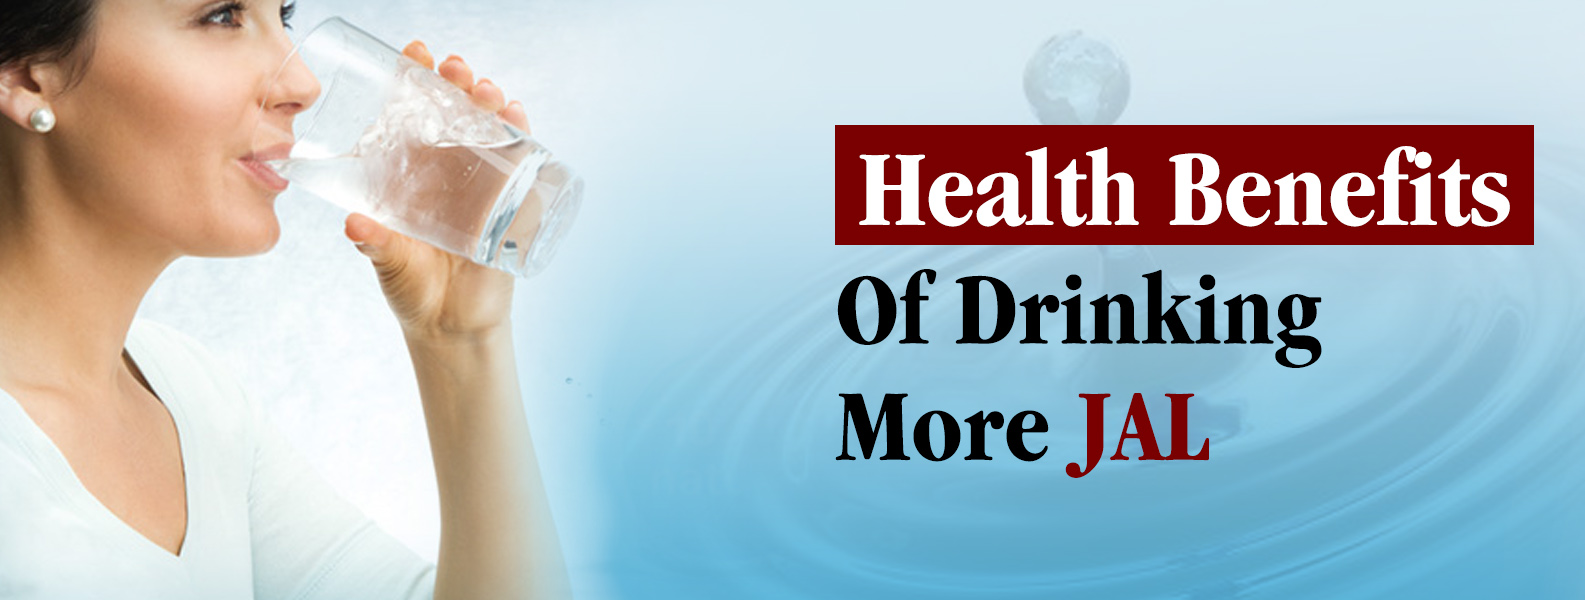 Health Benefits of Drinking JAL